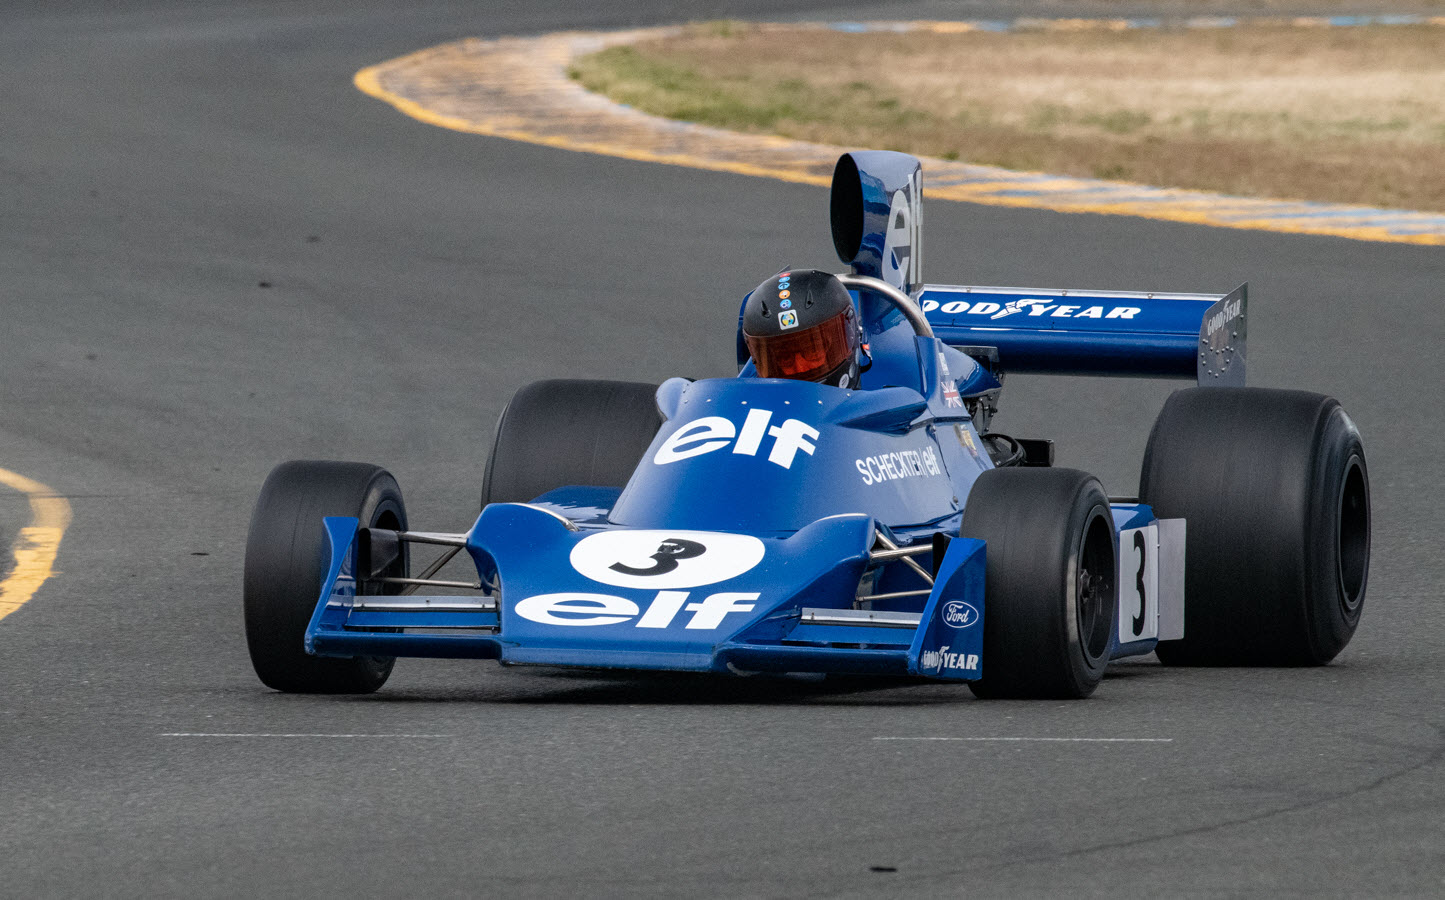 Masters historic F1 at the Sonoma Speed Festival